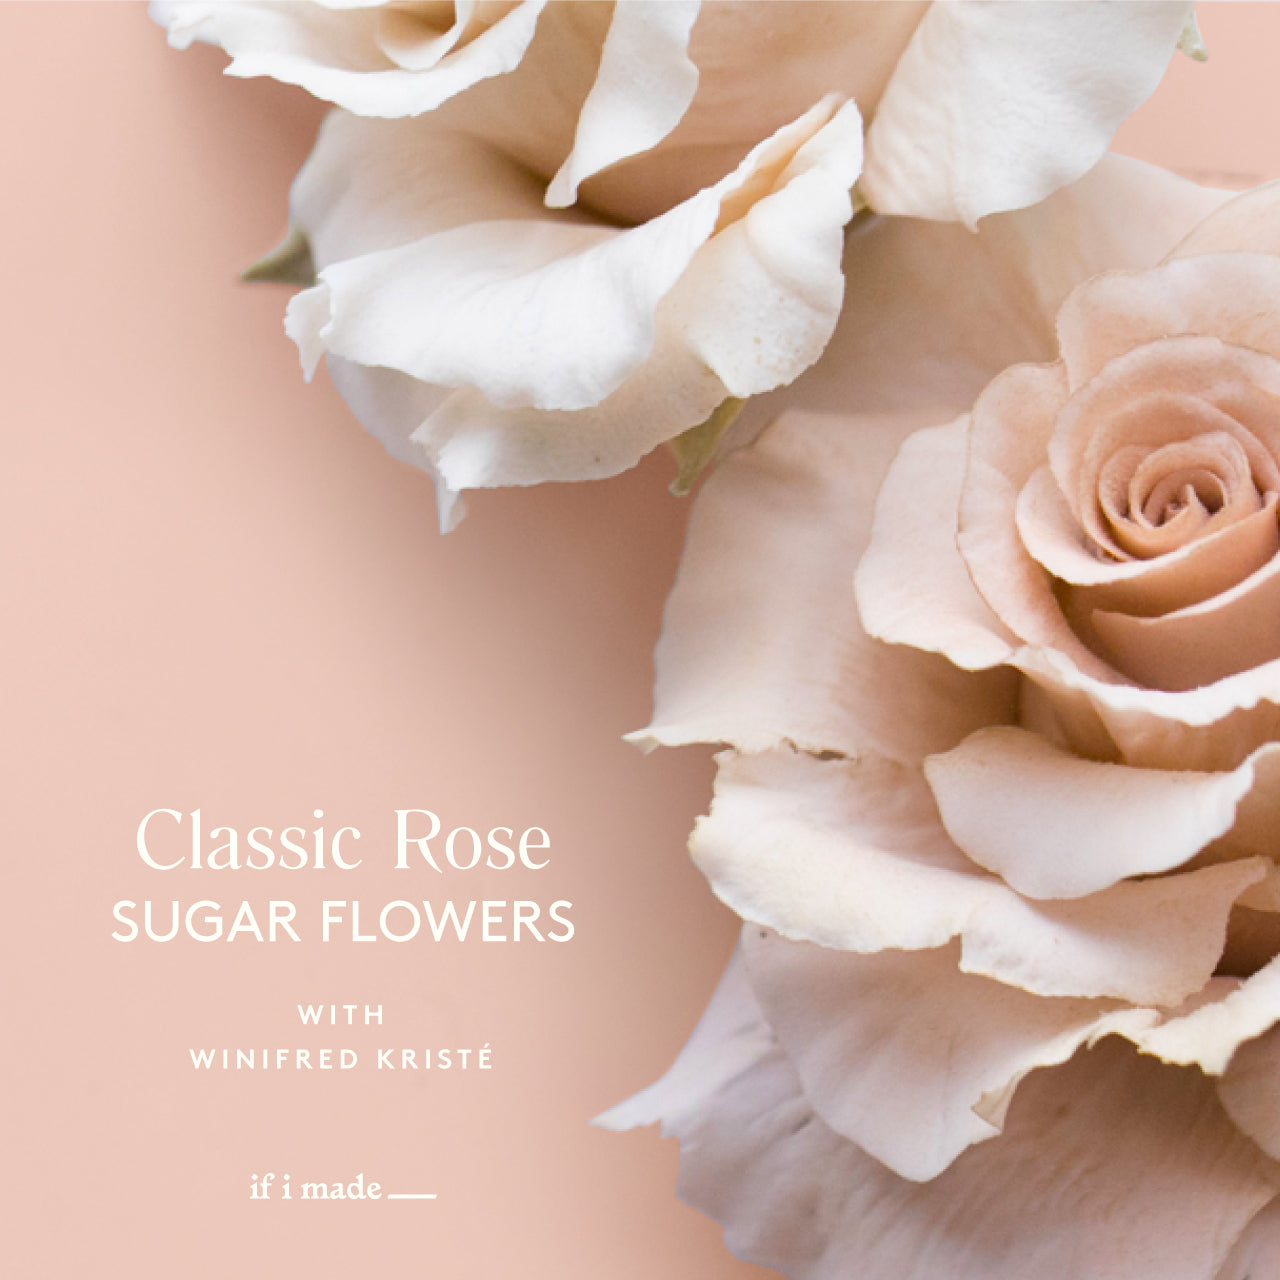 Classic Rose with Winifred Kristé Cake